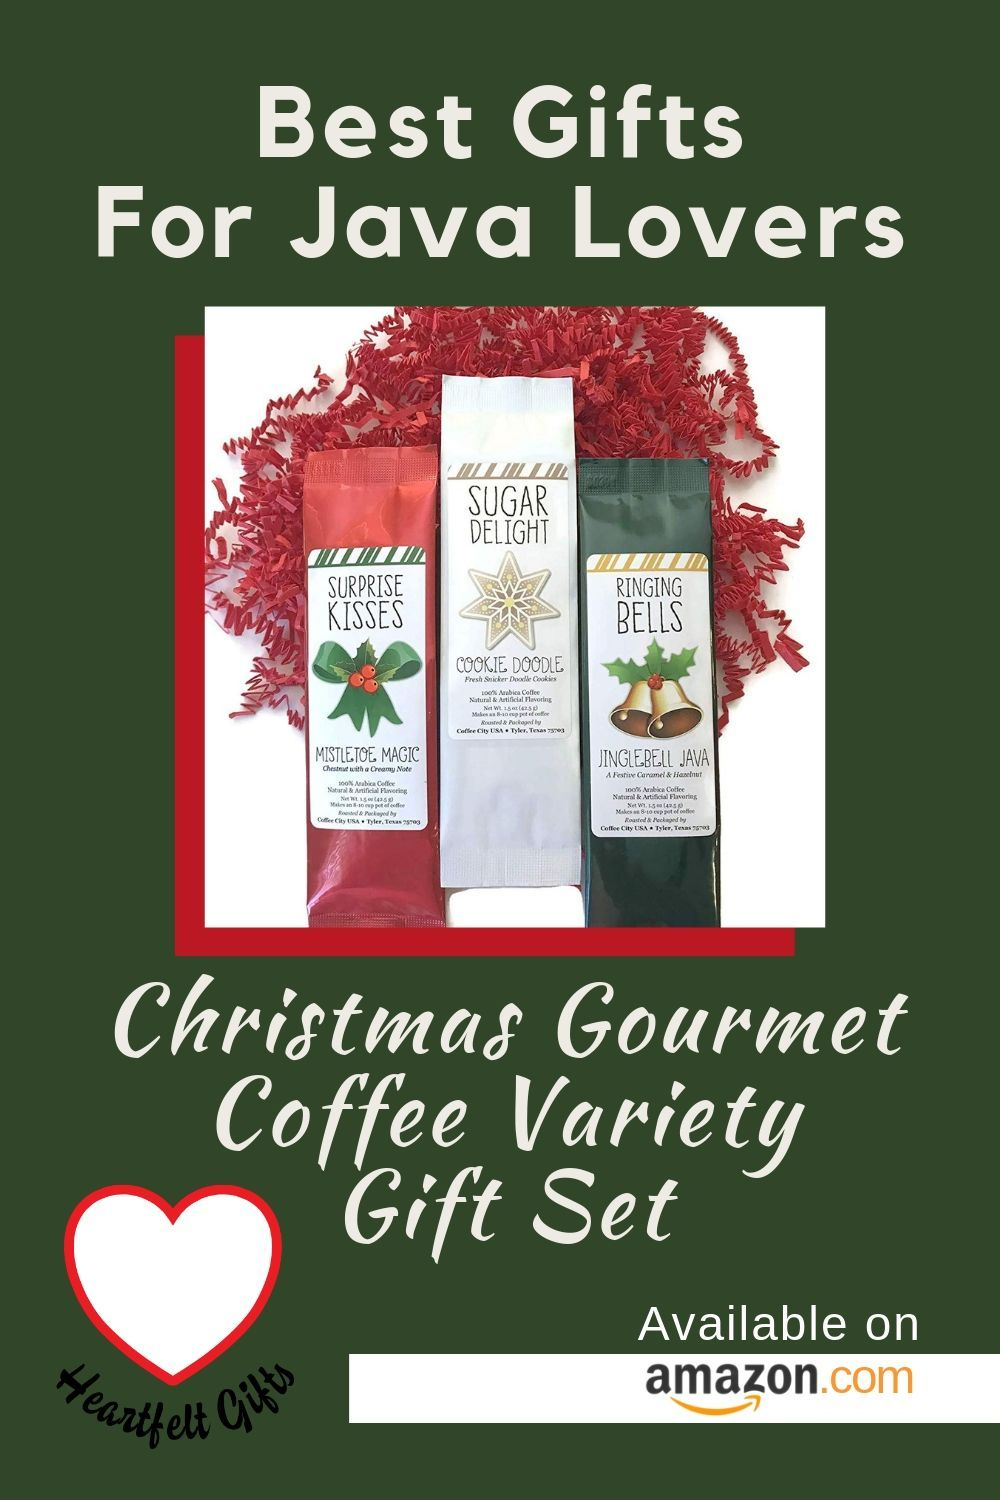 Christmas gourmet coffee variety gift set! Best gifts for